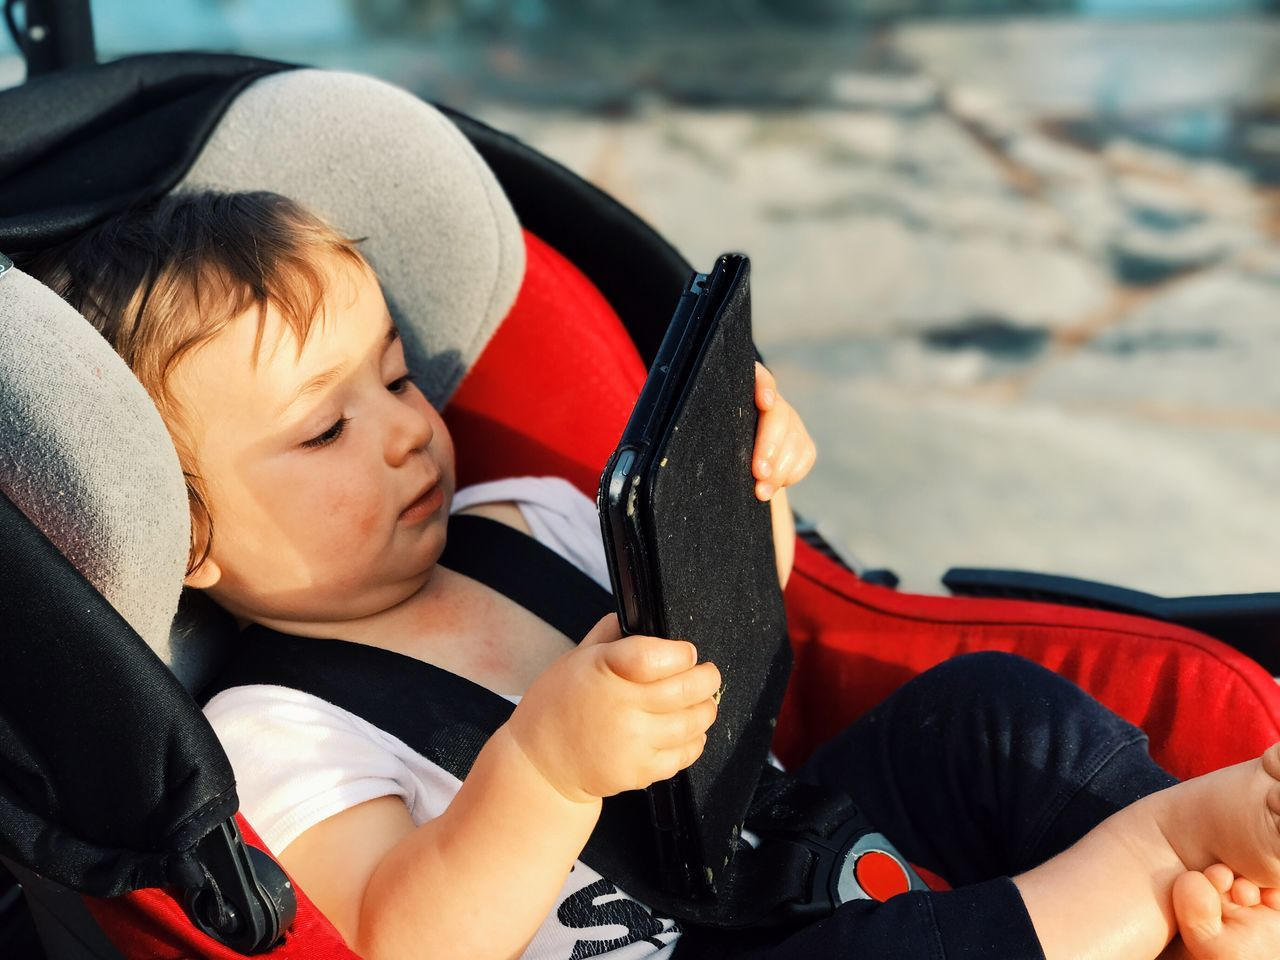 Baby Ipad New Technology Tablet Childhood Car Real People Transportation One Person Boys Day Steering Wheel Toy Car Outdoors Close-up One Boy Only People